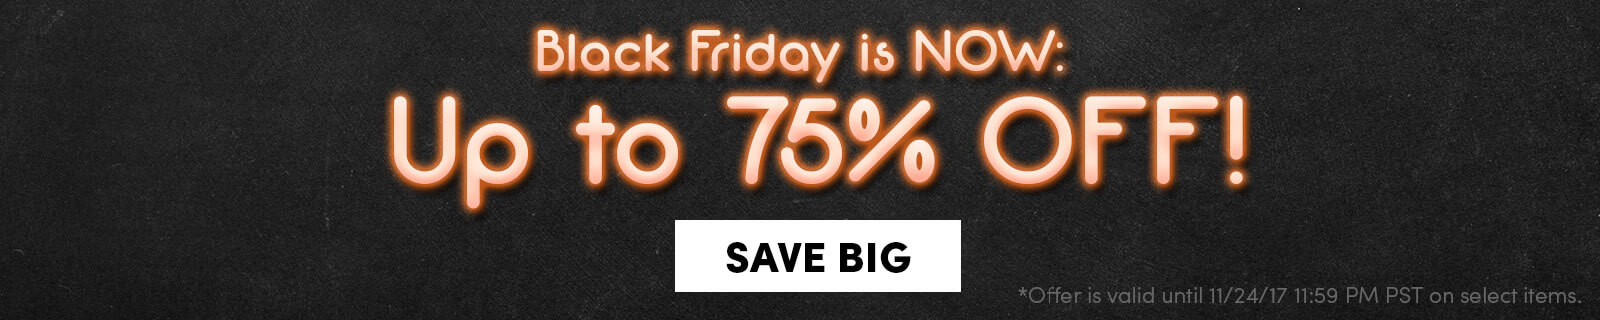 Black Friday Is Now Up to 75% Off Save Now